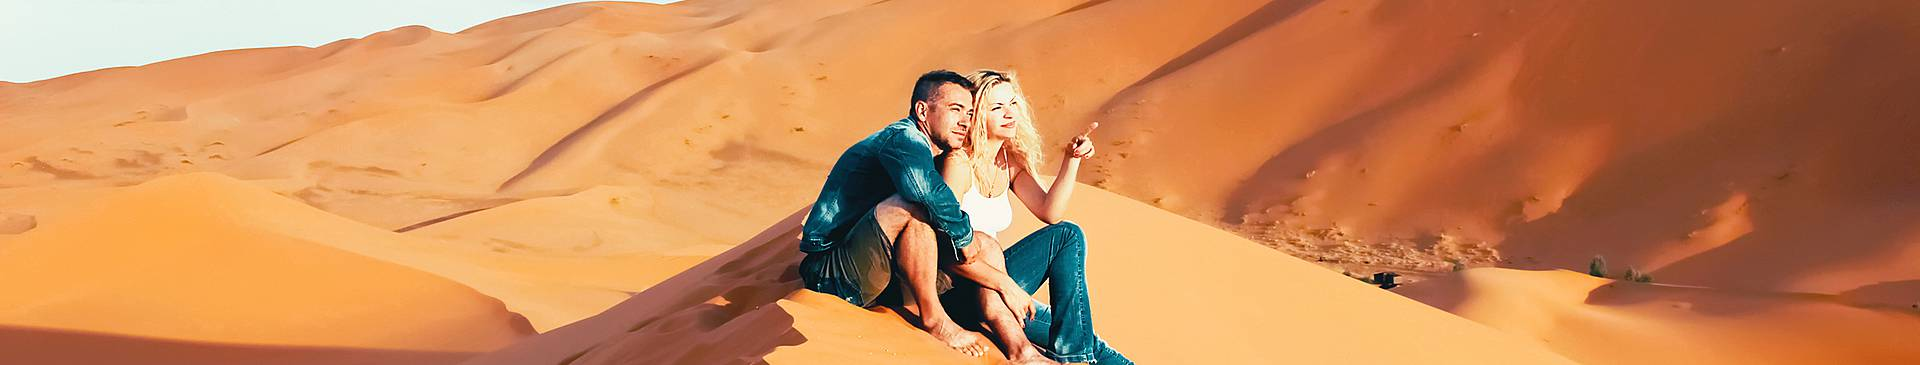 Romantic holidays in Morocco